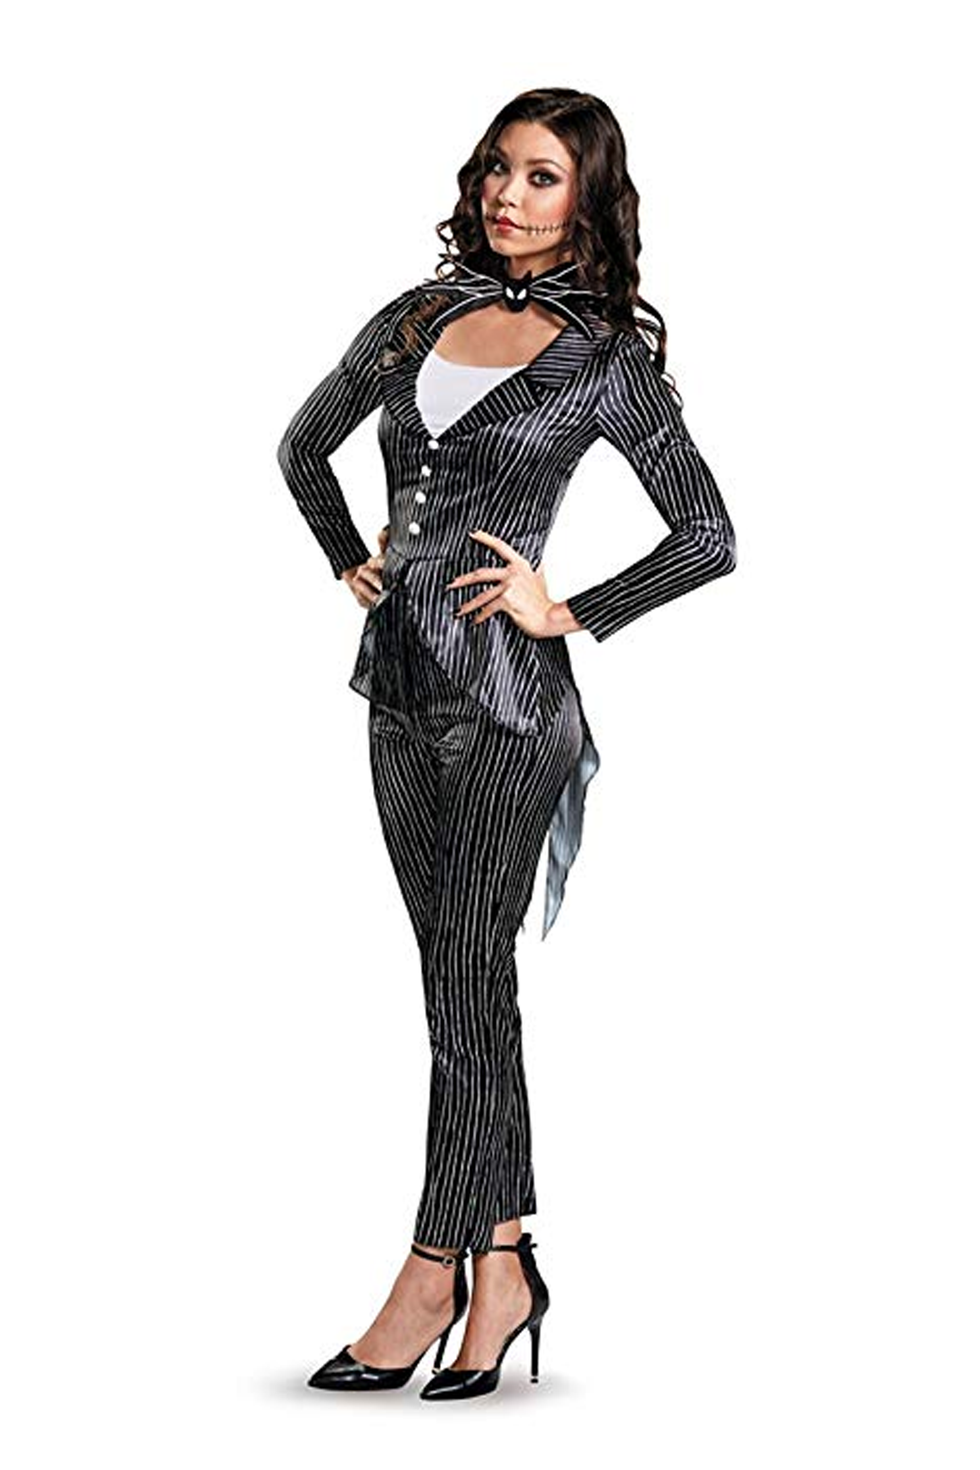 Jack Sally Halloween Costumes From Nightmare Before Christmas